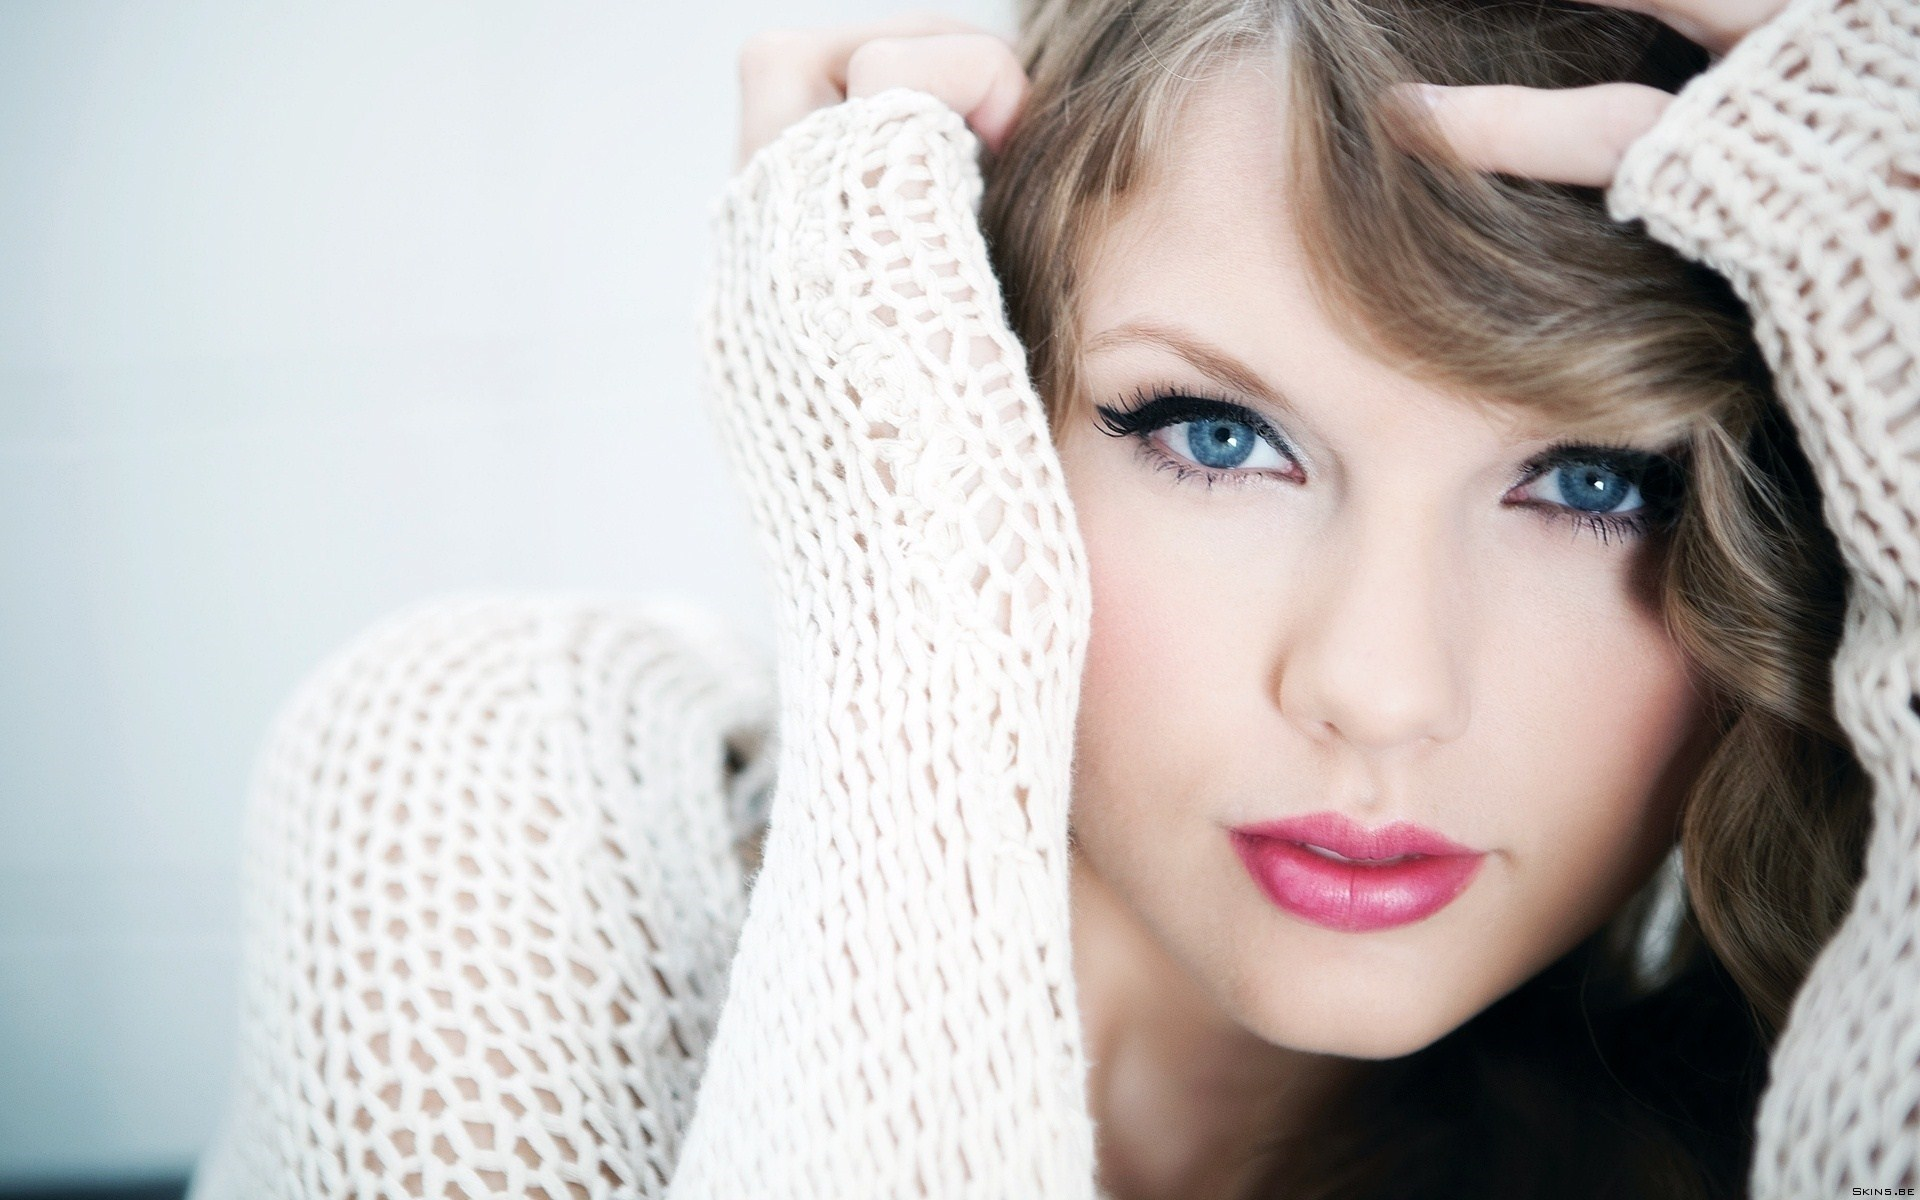 Taylor Swift Blonde Singer Girl